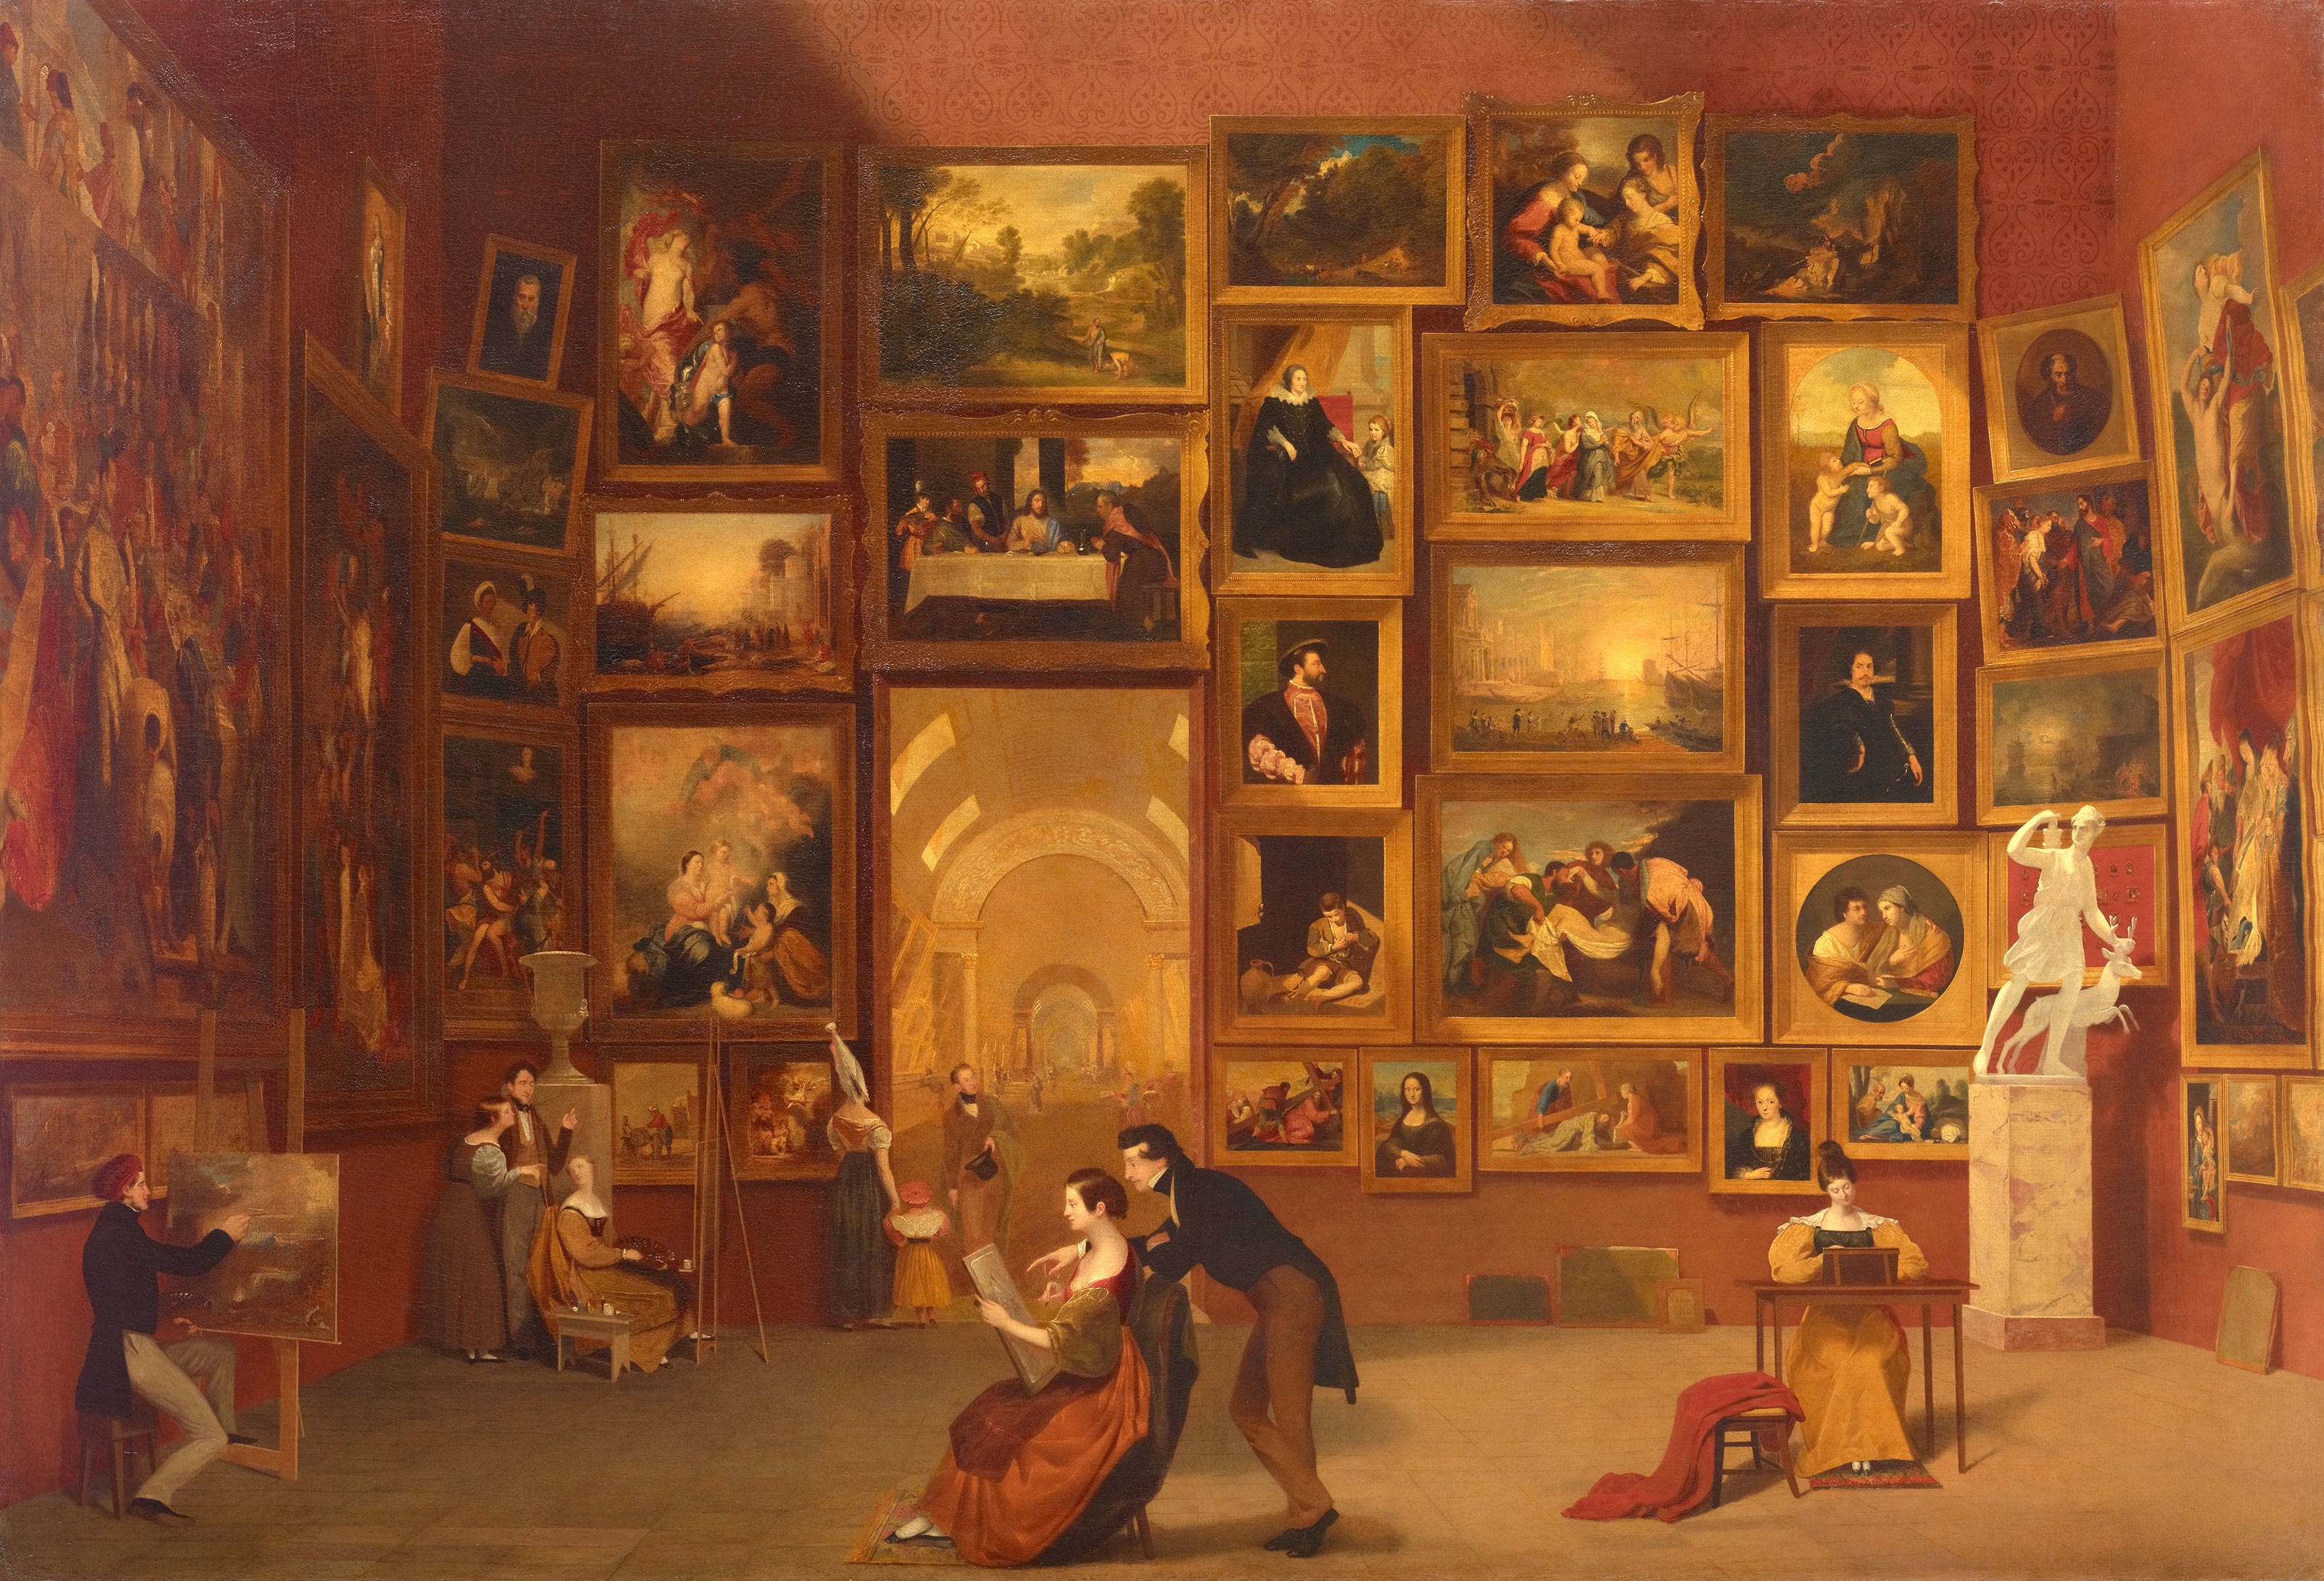 Painting by Samuel F. B. Morse of the Louvre Salon in the 1800s.